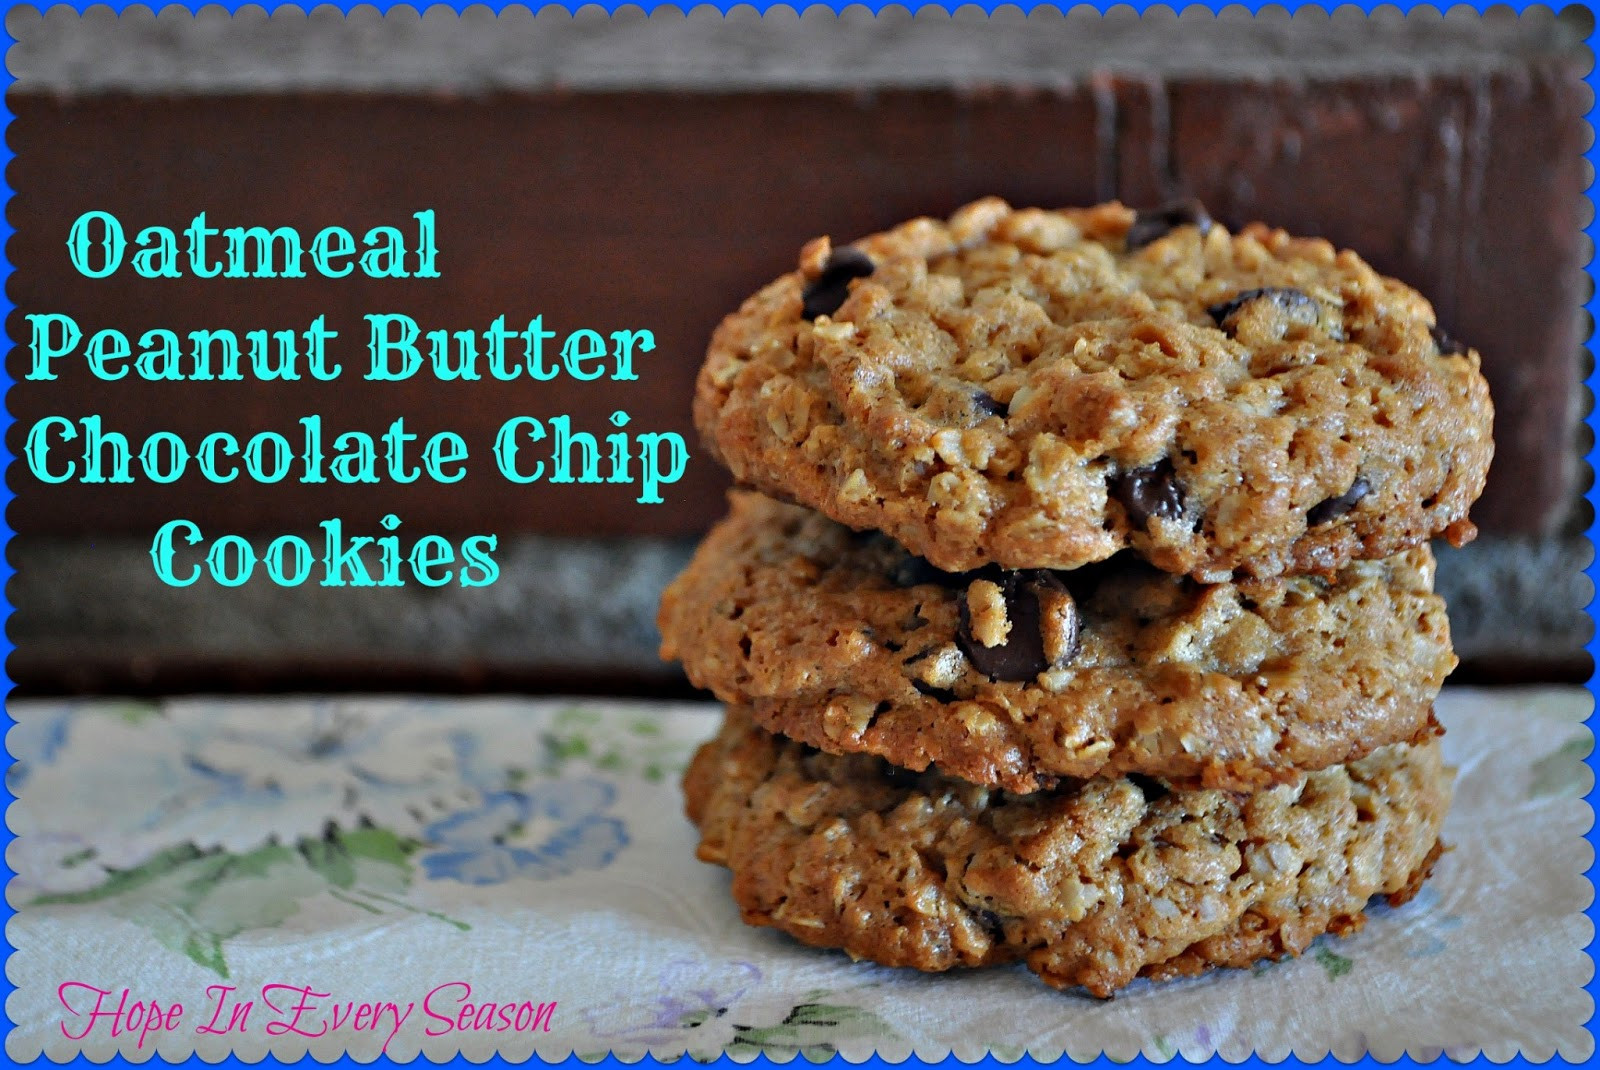 Peanut Butter Chocolate Chip Oatmeal Cookies  Classical Homemaking Oatmeal Peanut Butter Chocolate Chip